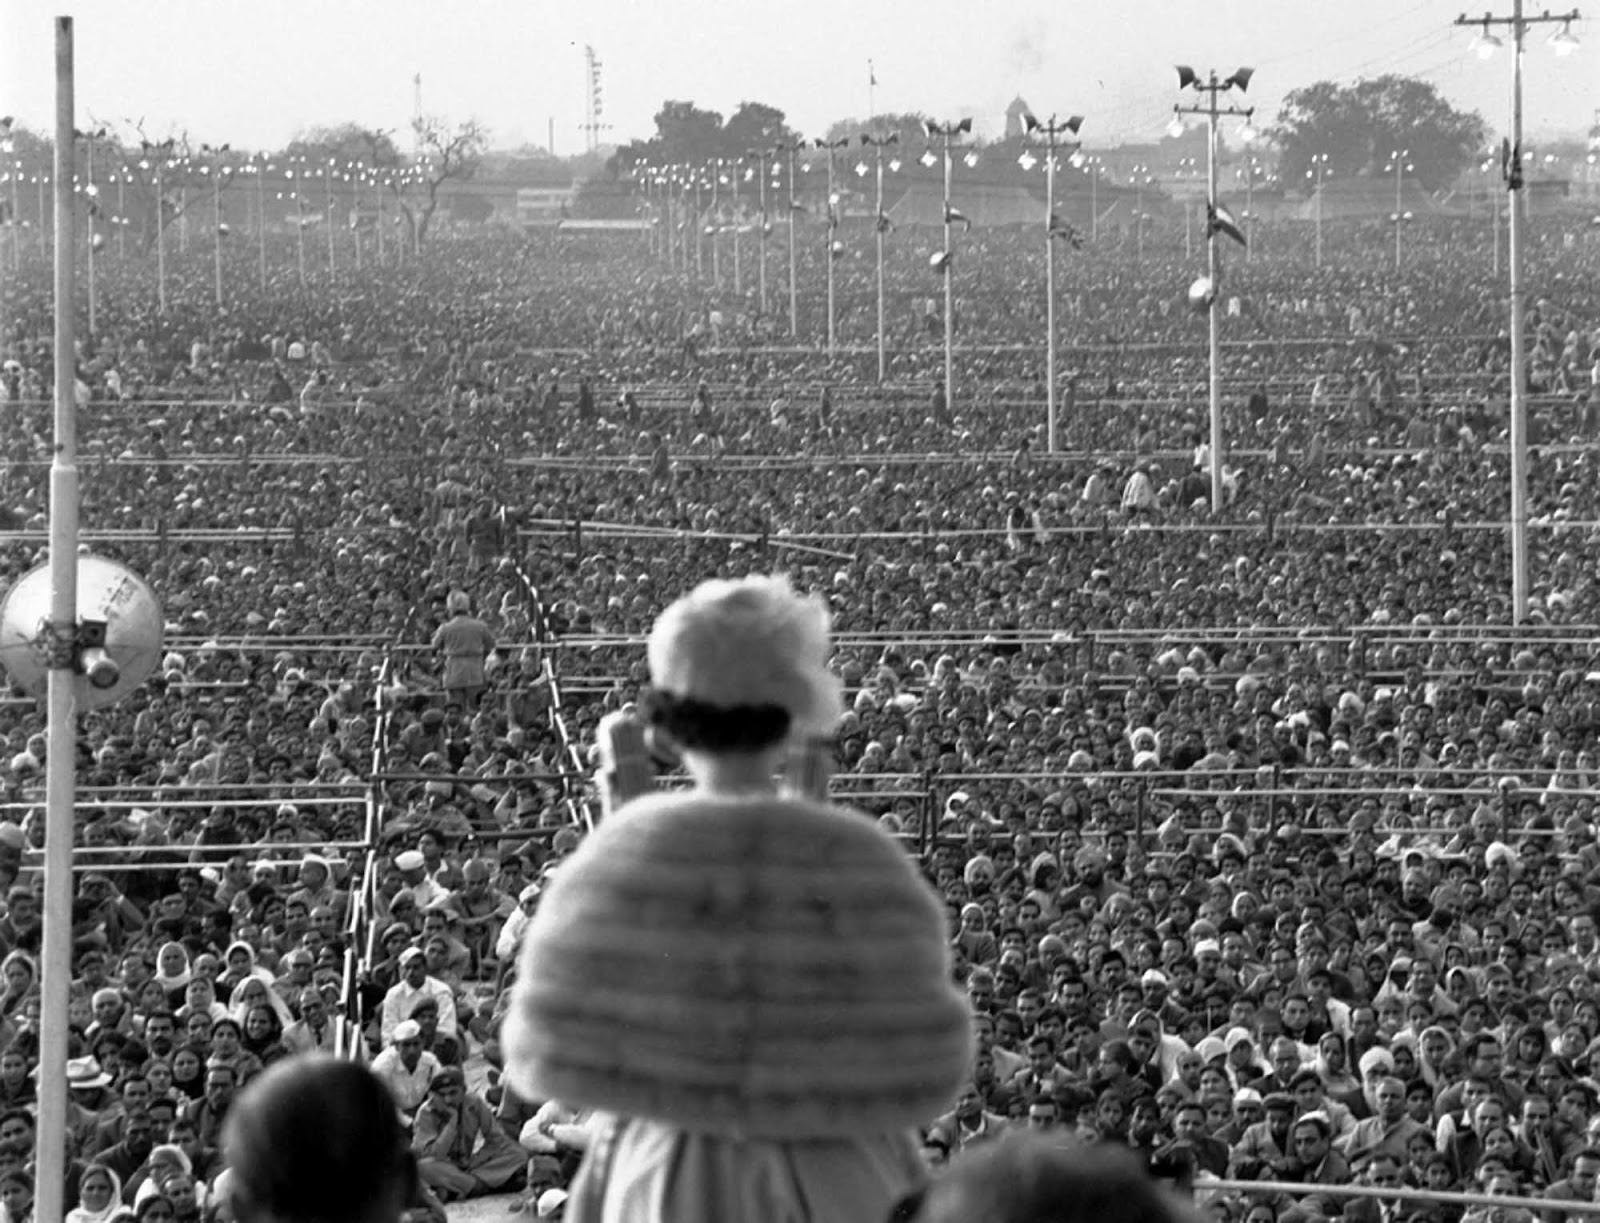 Britain's Queen Elizabeth II addresses a vast gathering of more than a quarter of a million at the Ramlila Grounds, a huge public meeting place outside the walls of Old Delhi, India, 1961.